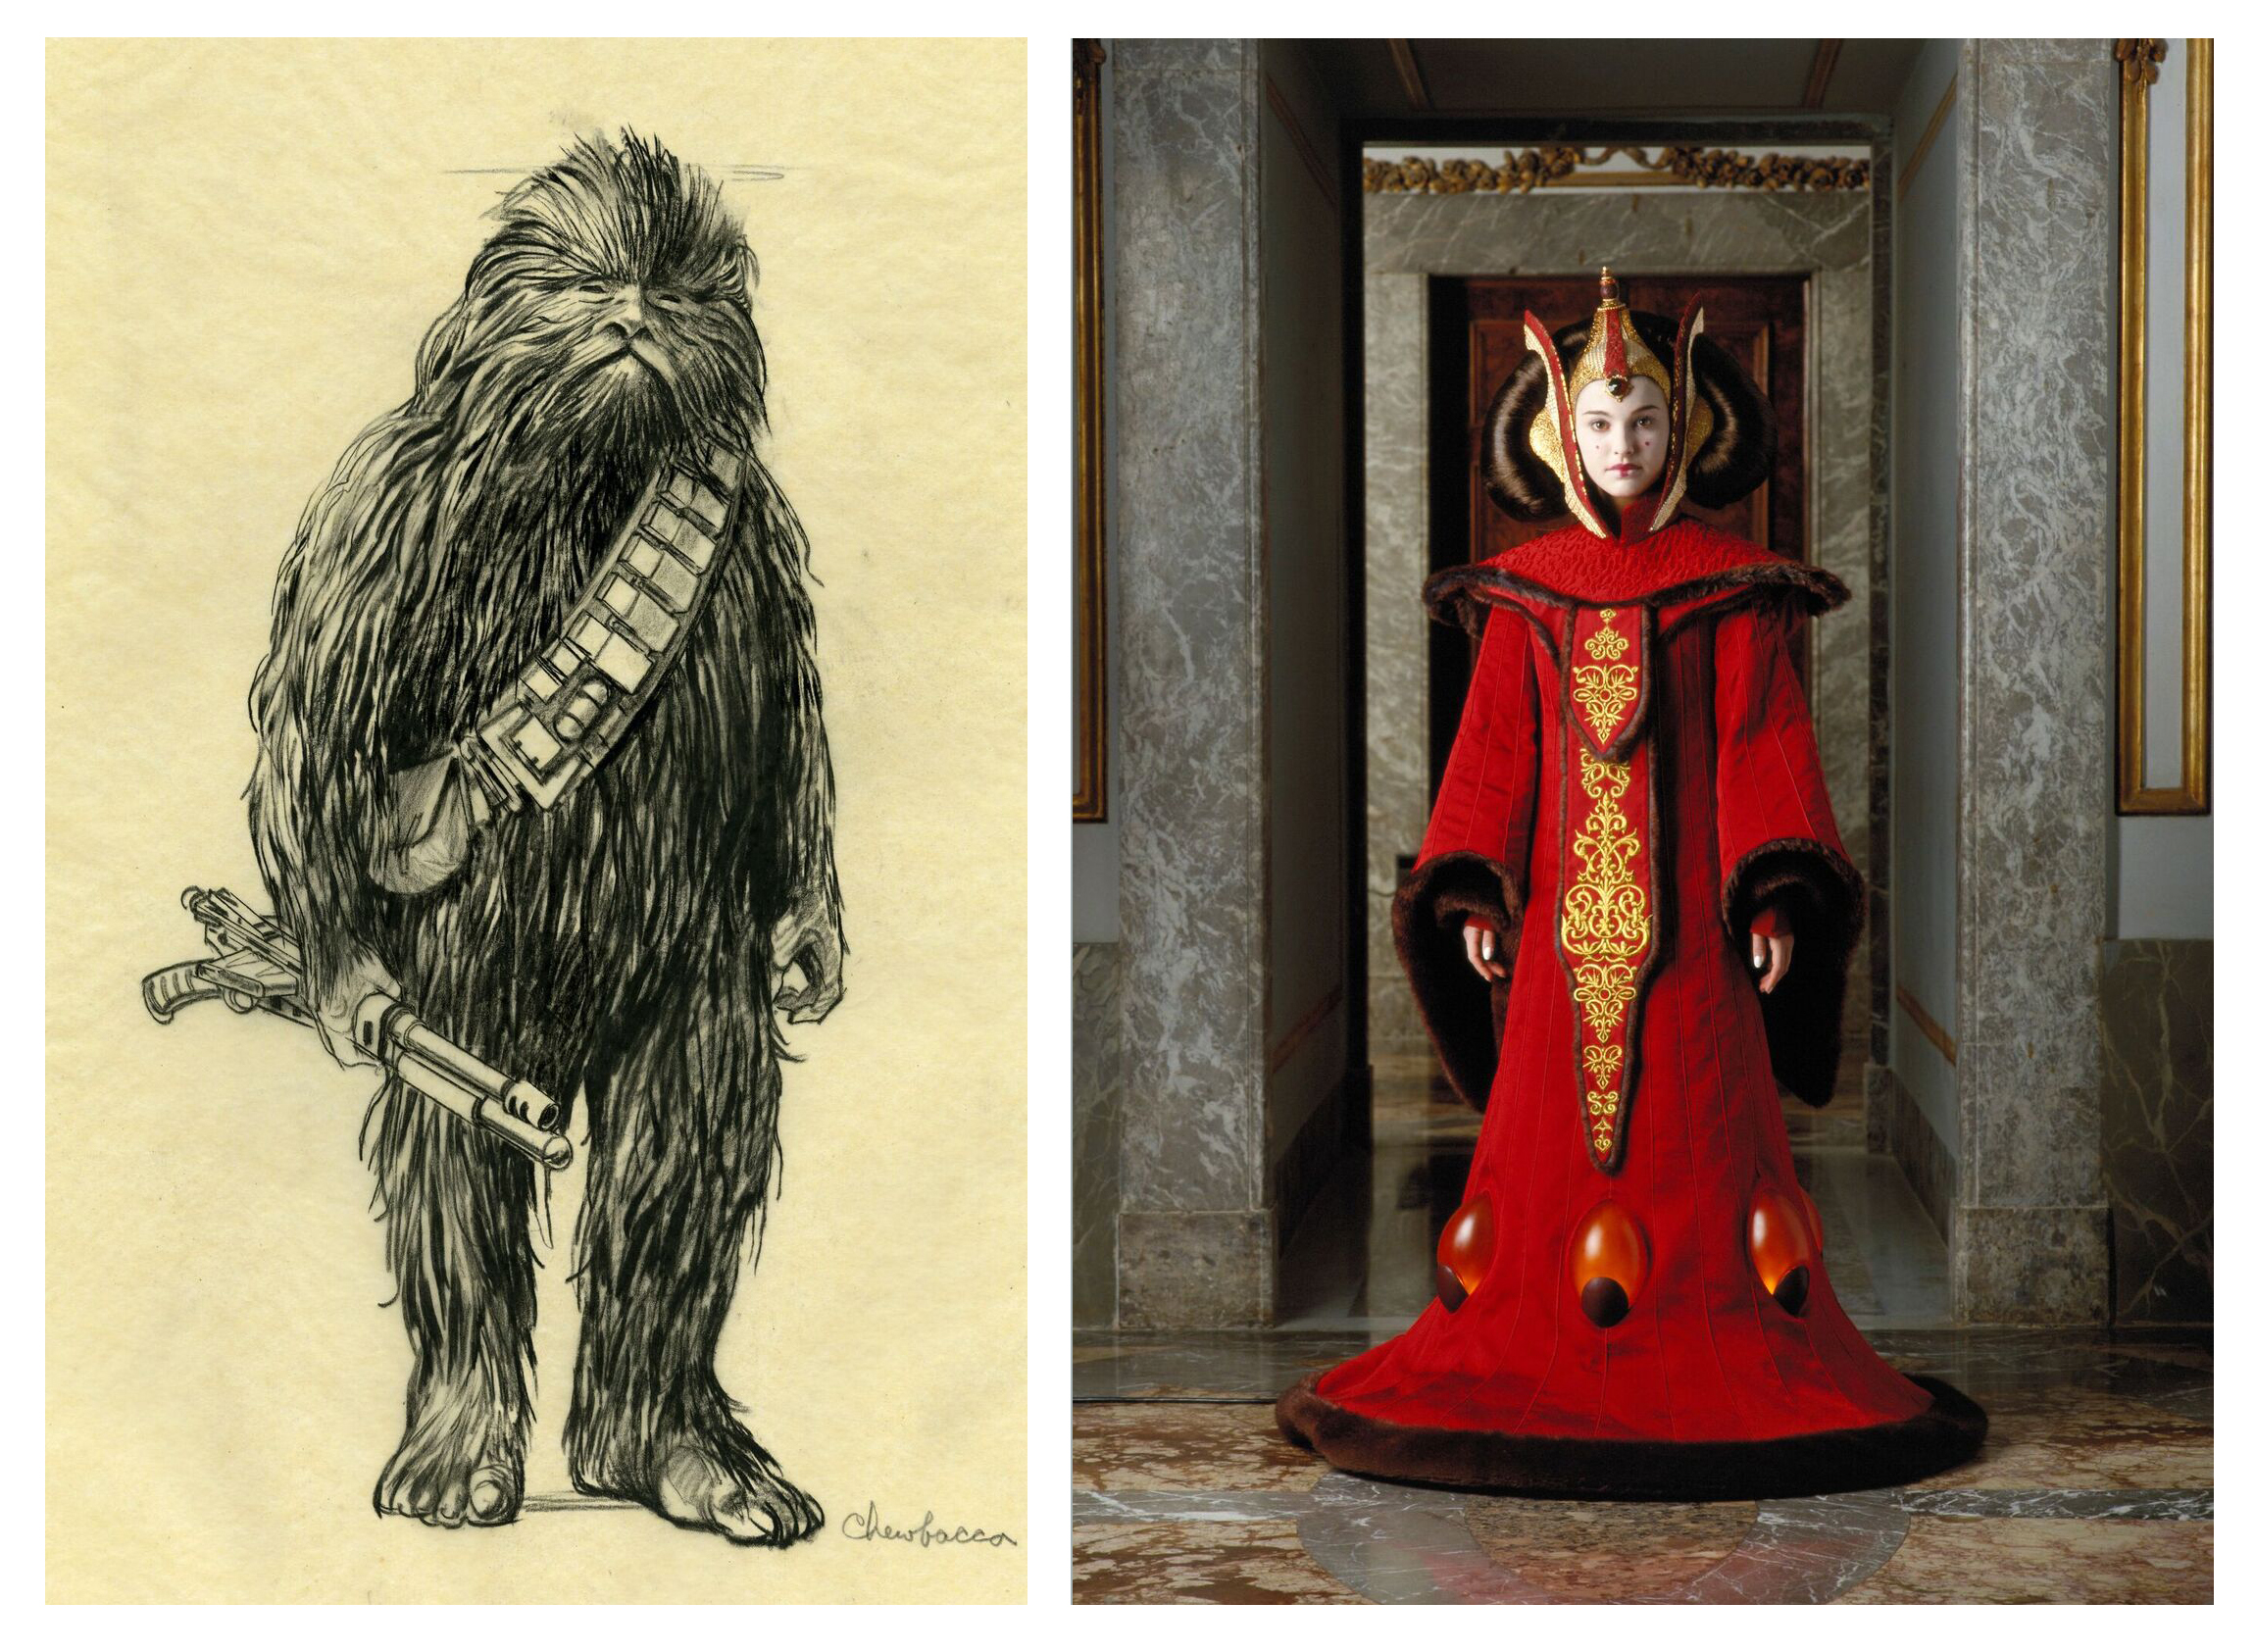 Attractive Star Wars Costumes In Denver, Auction Of 10 Commandments Stone, And More  Fresh News